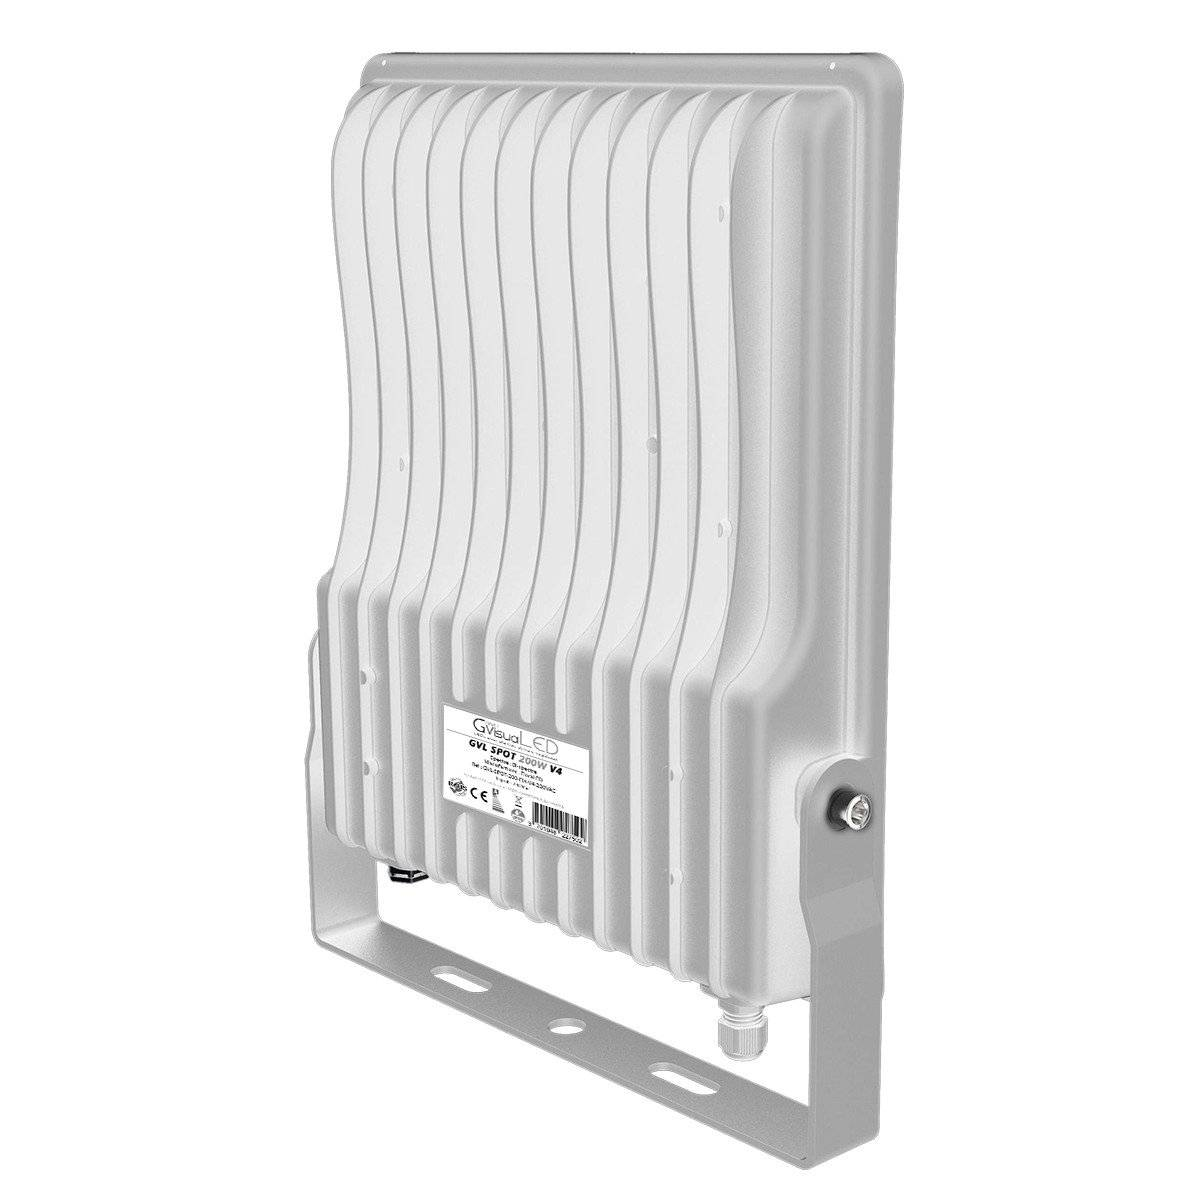 Horticultural bar pack LEDs Spectrum full - SpectraB.2.G X45 60cm x5